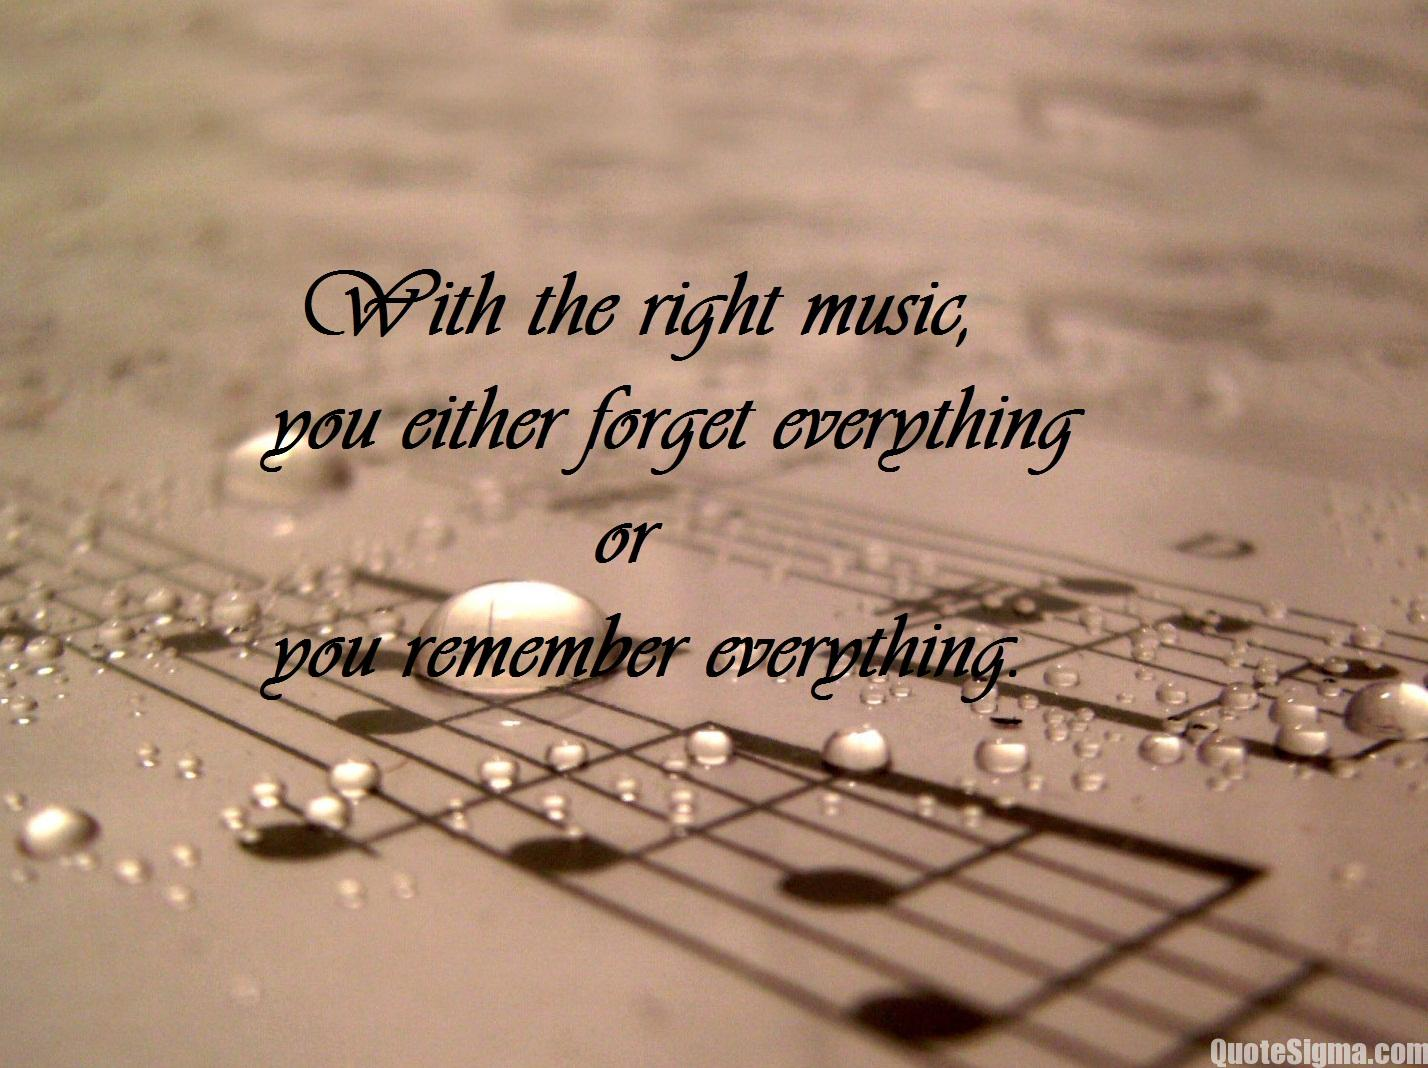 Music quotes wallpaper download